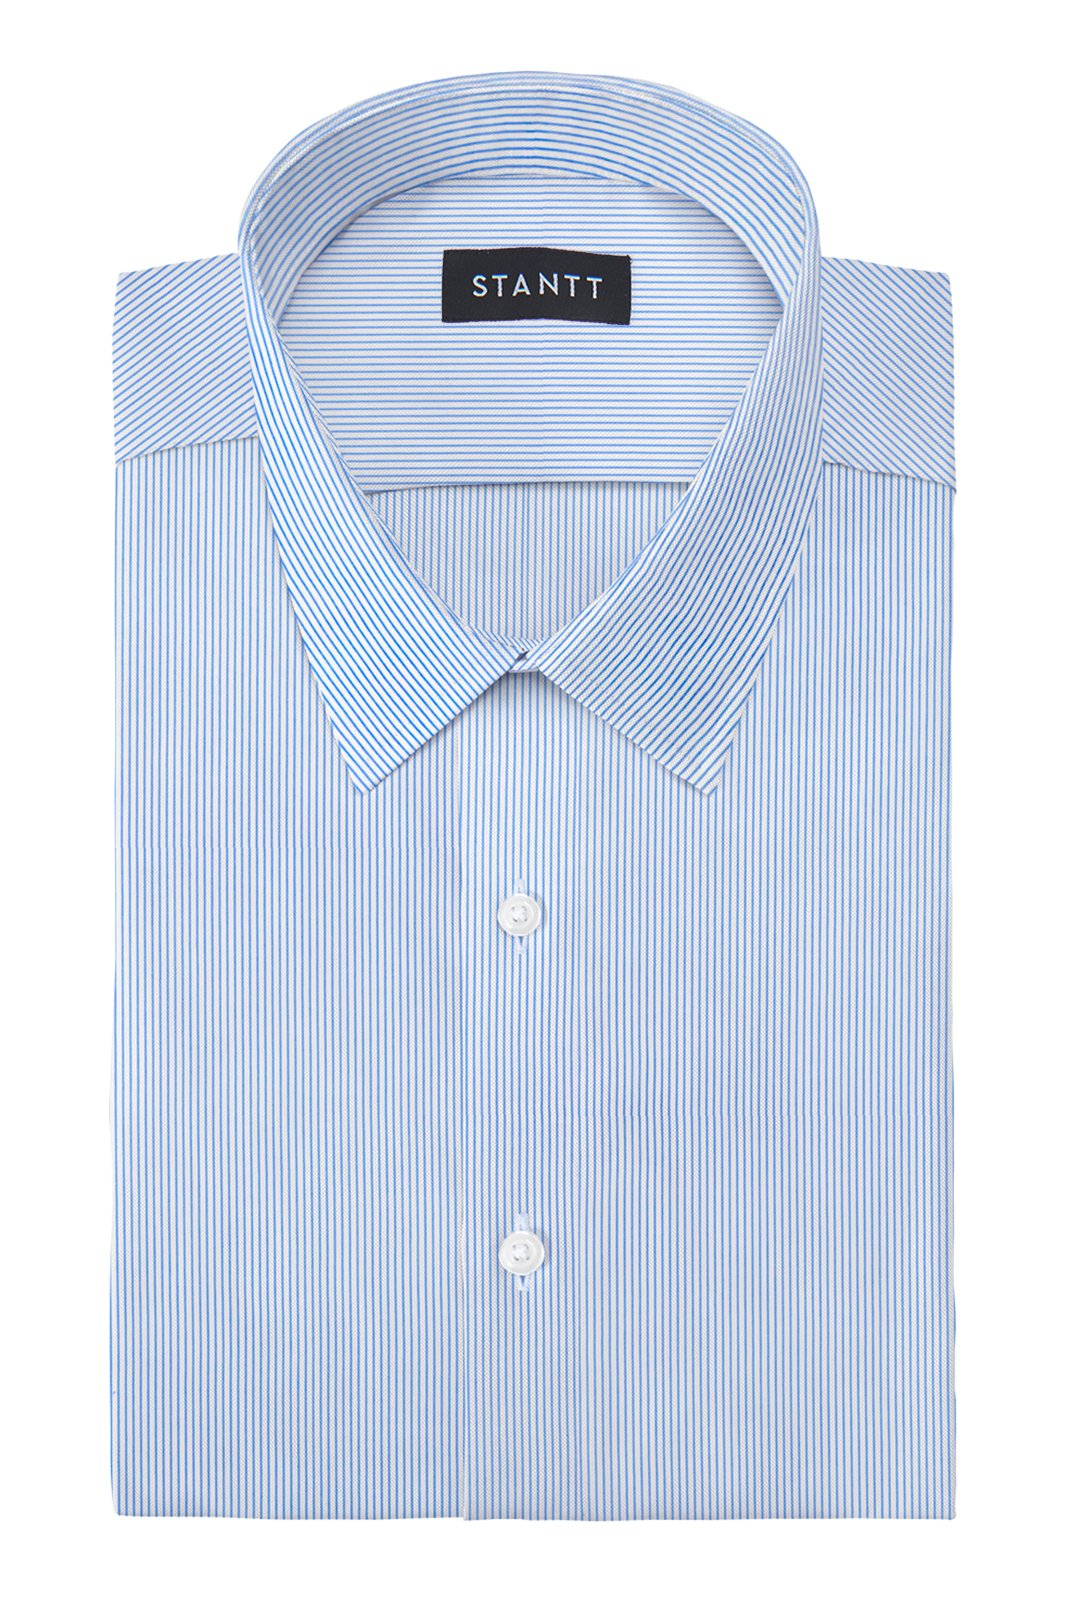 Performance Blue Bengal Stripe: Semi-Spread Collar, French Cuff